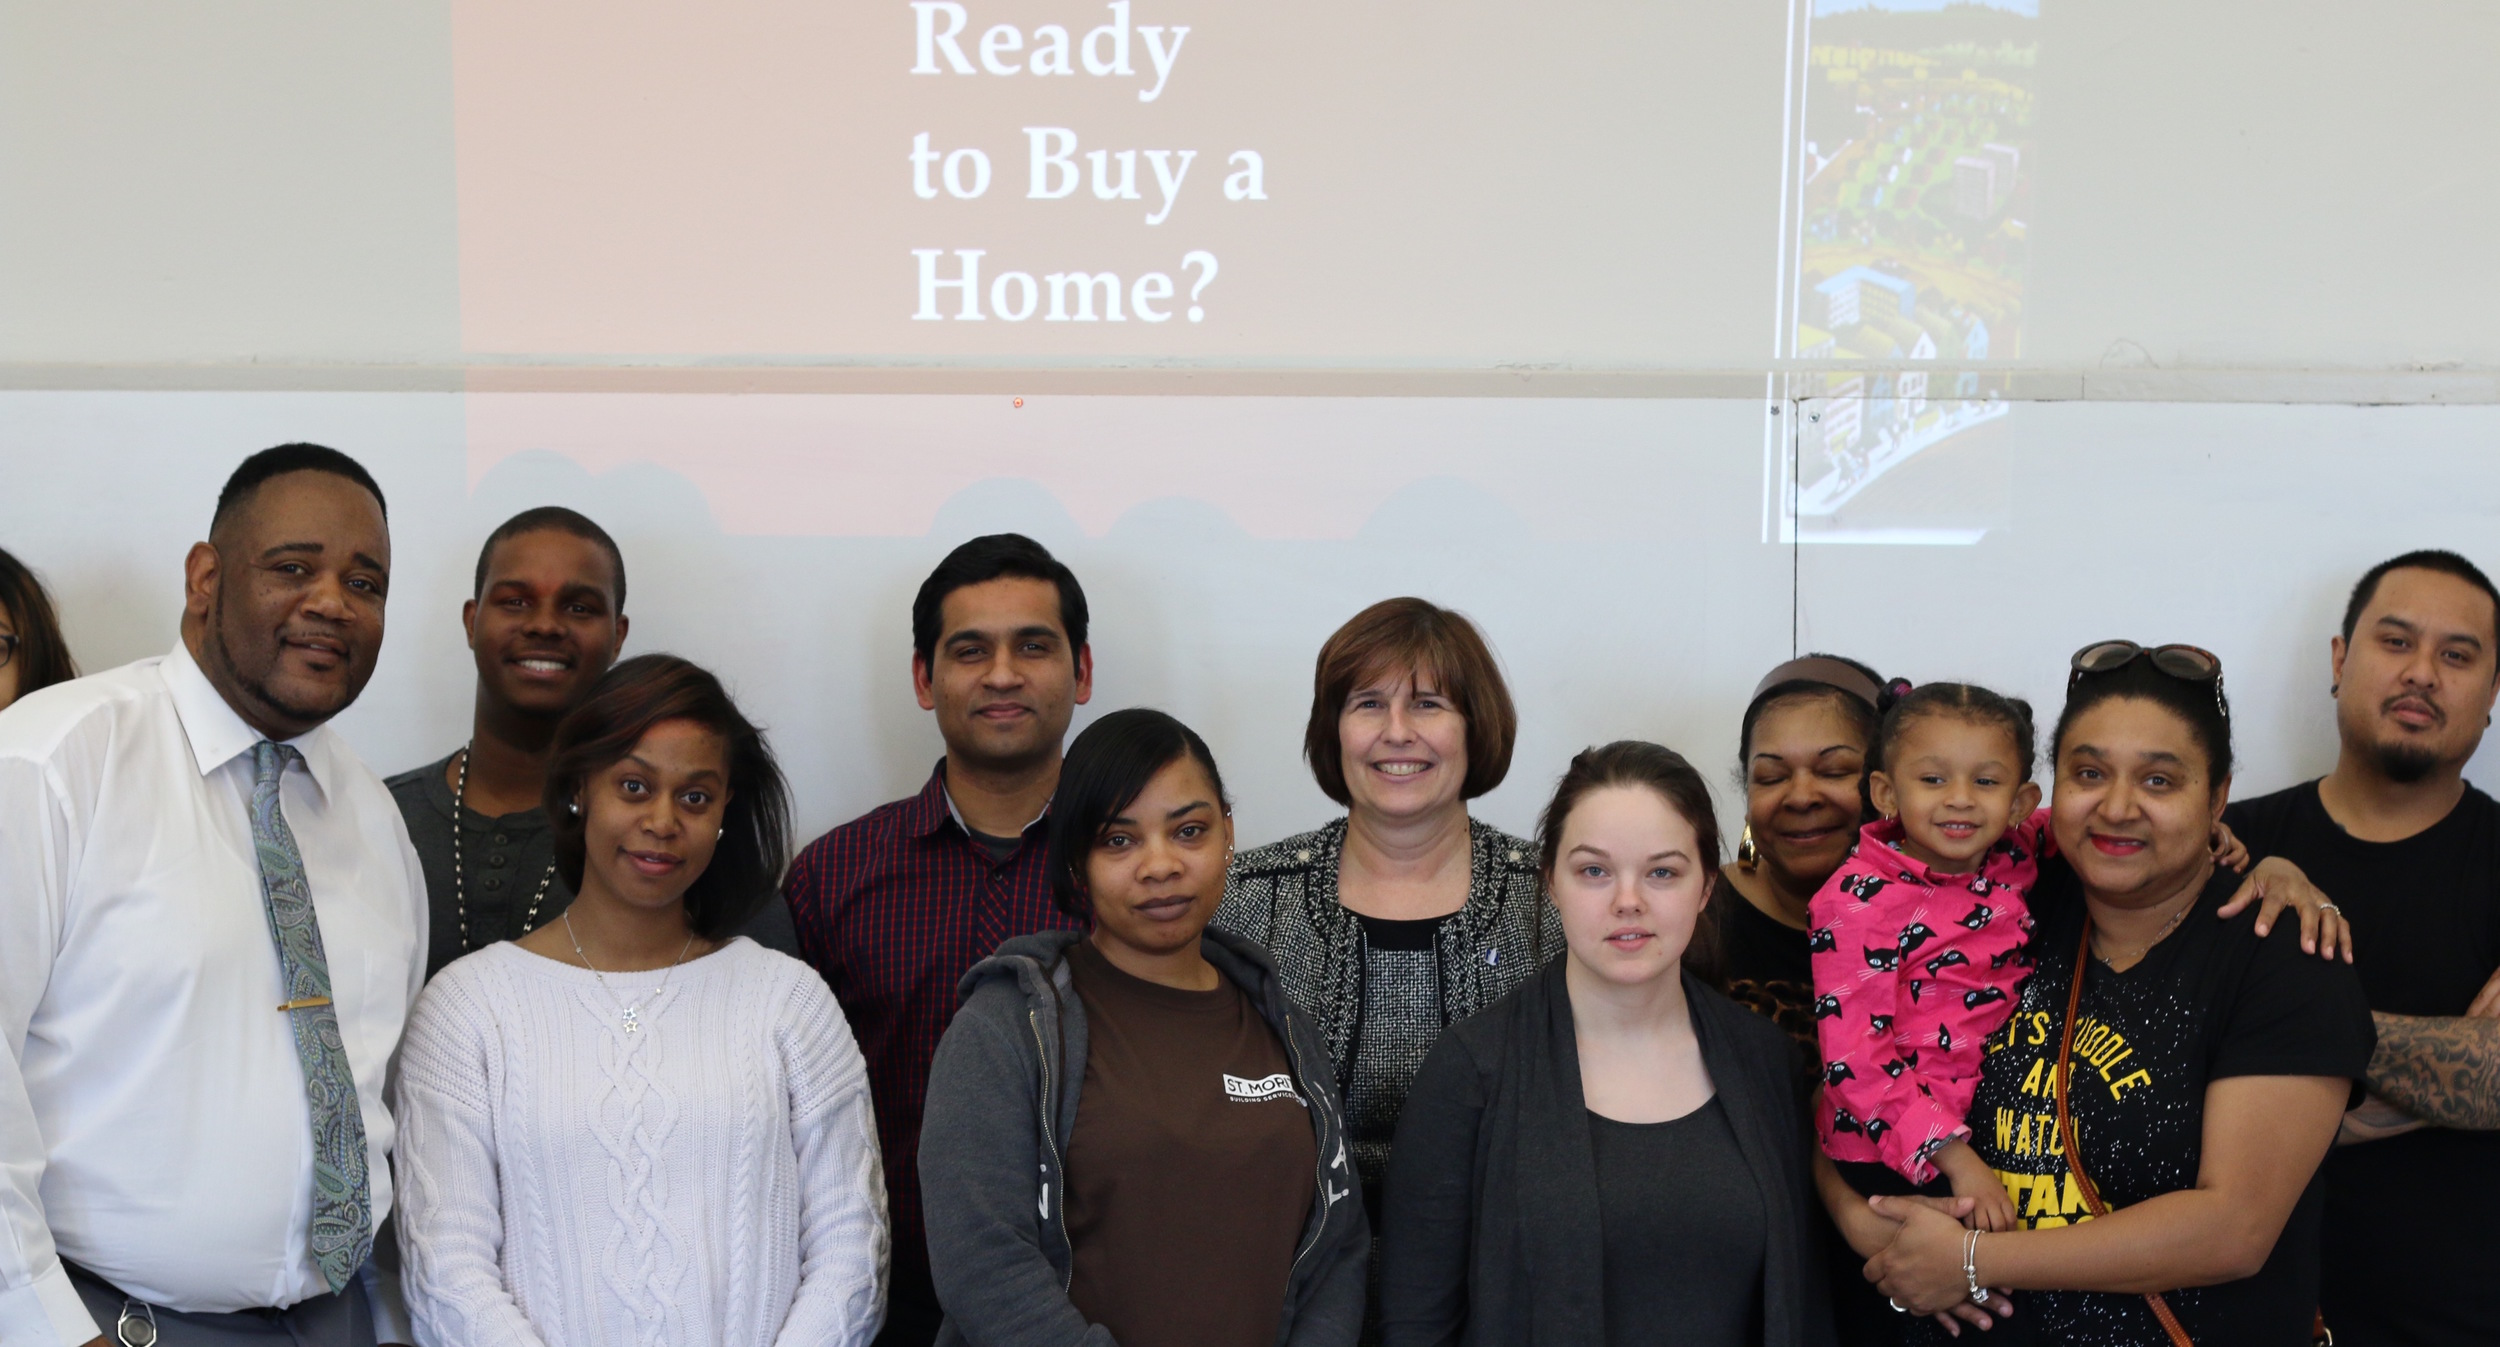 Karen Blickley, Nationwide Foundation VP, second row, center. Homeport Homebuyer Ed Counselor Kerrick Jackson, far left.